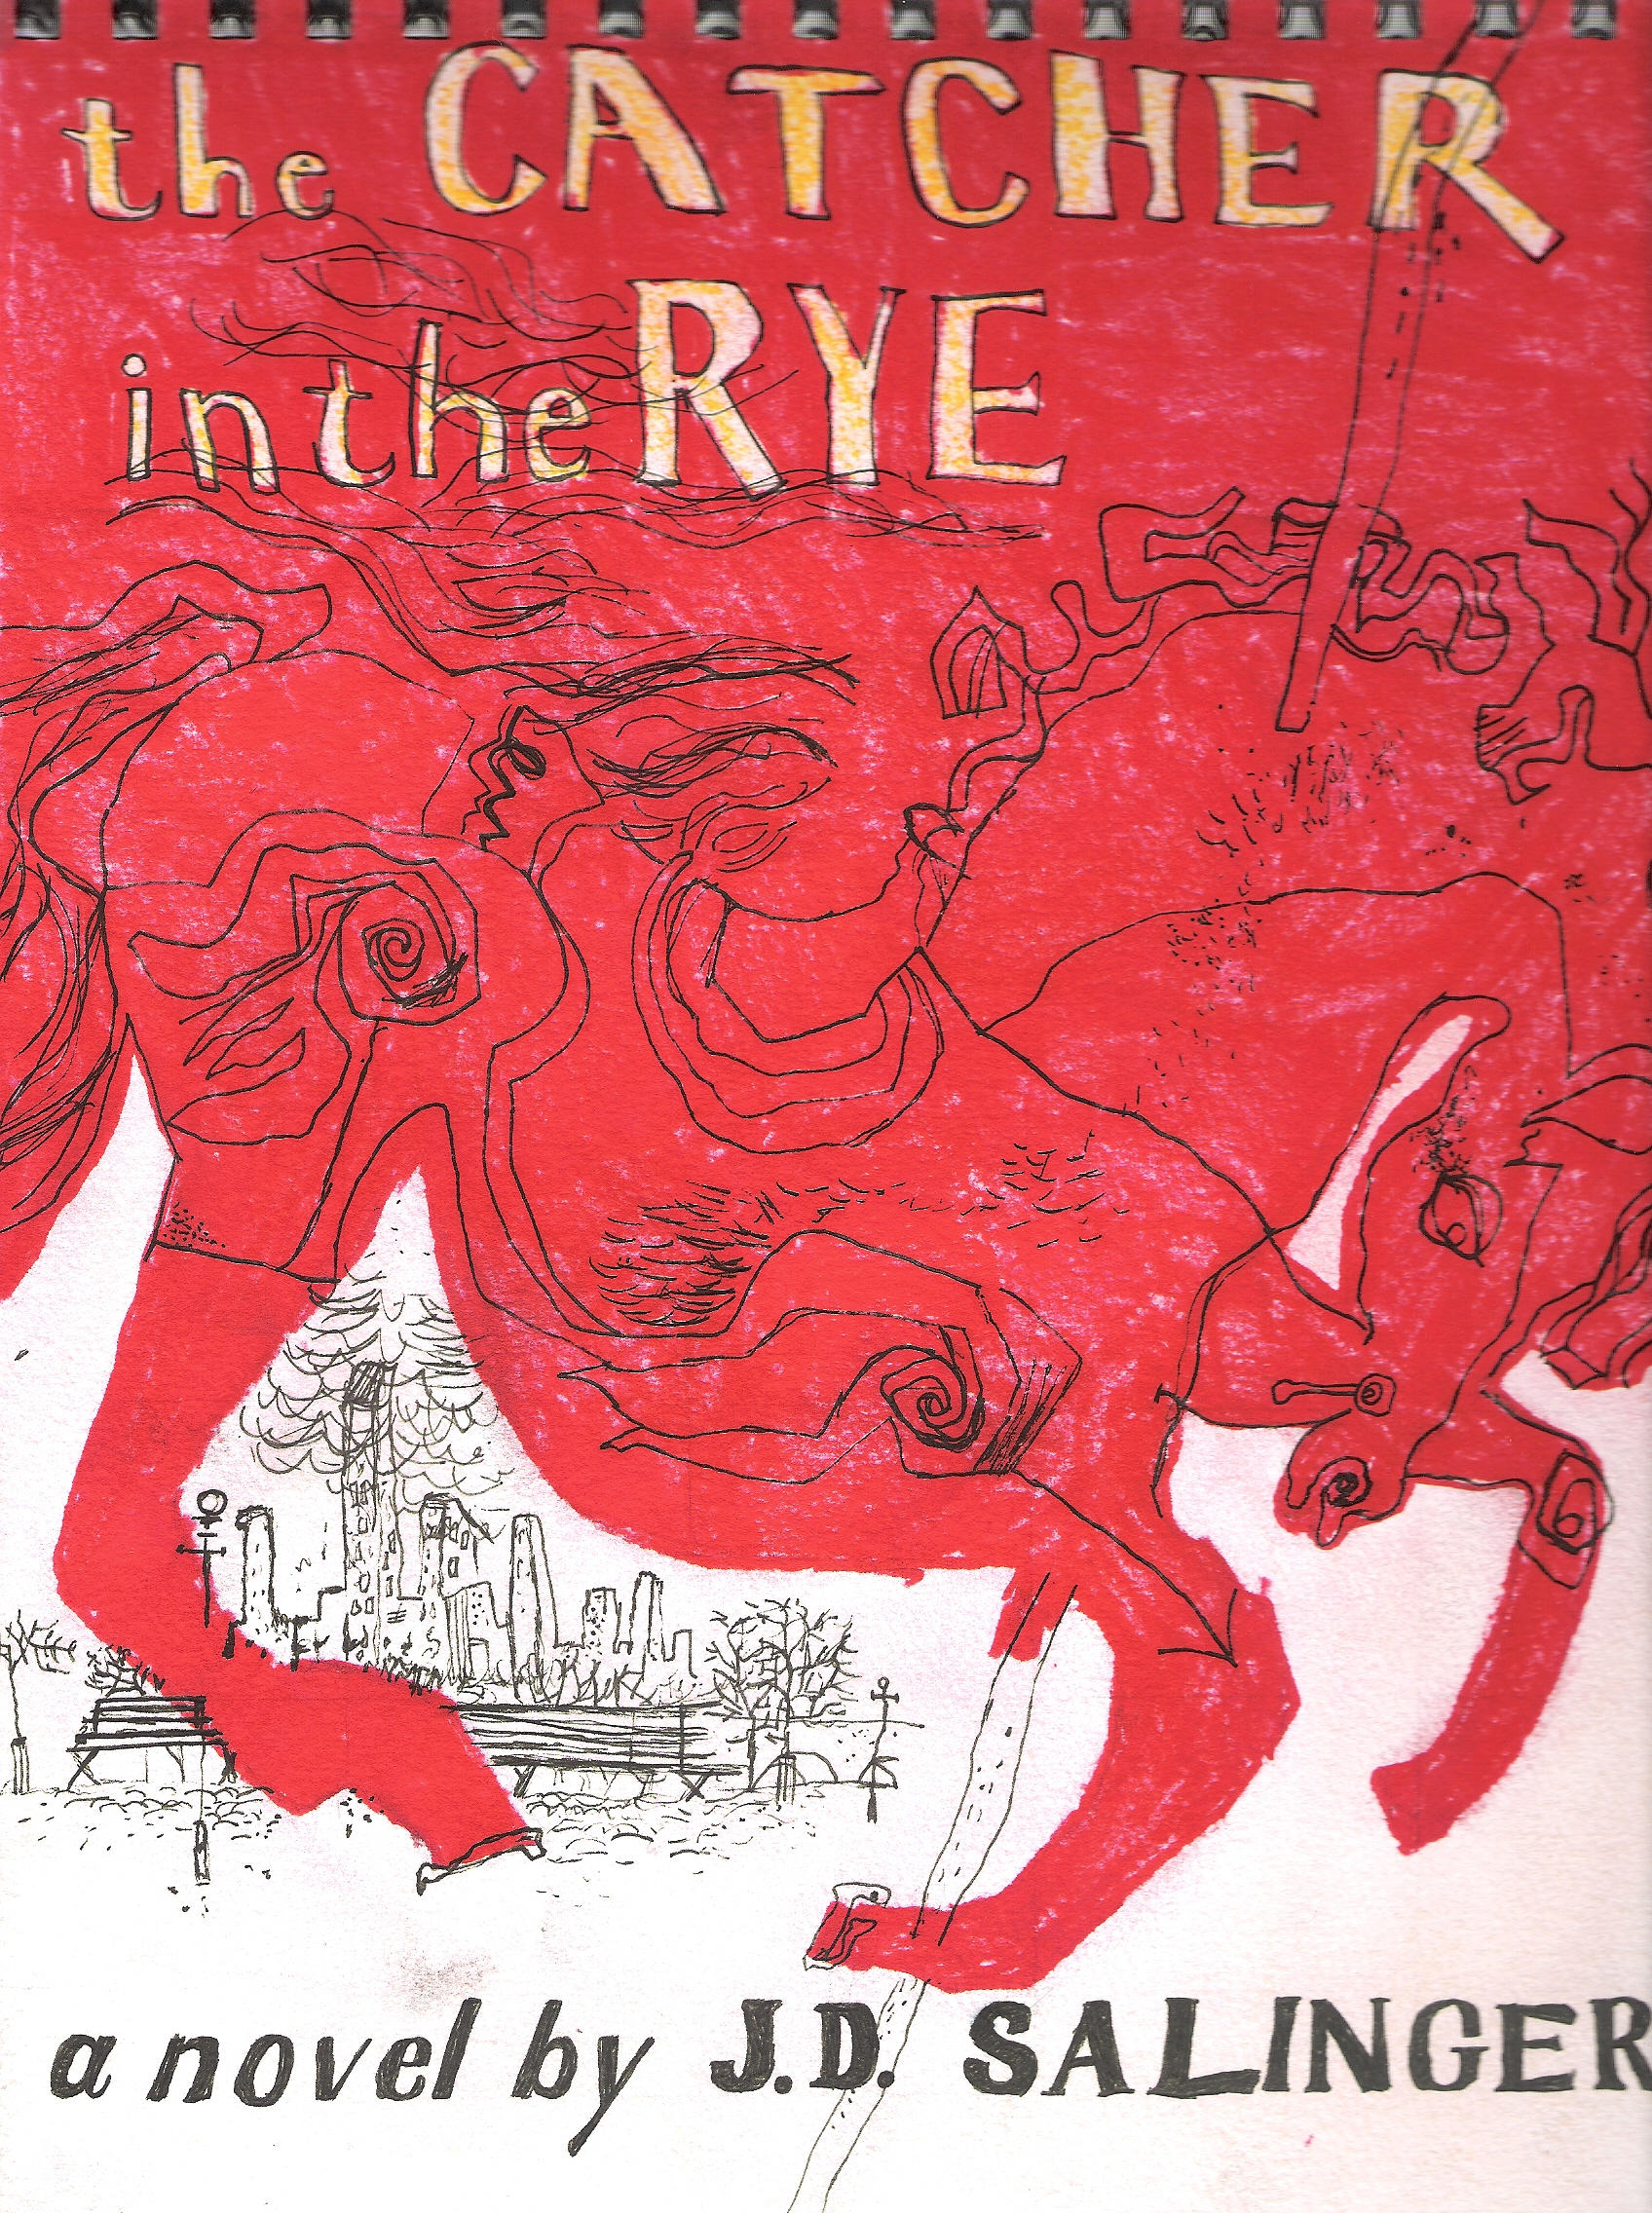 thesis on catcher in the rye